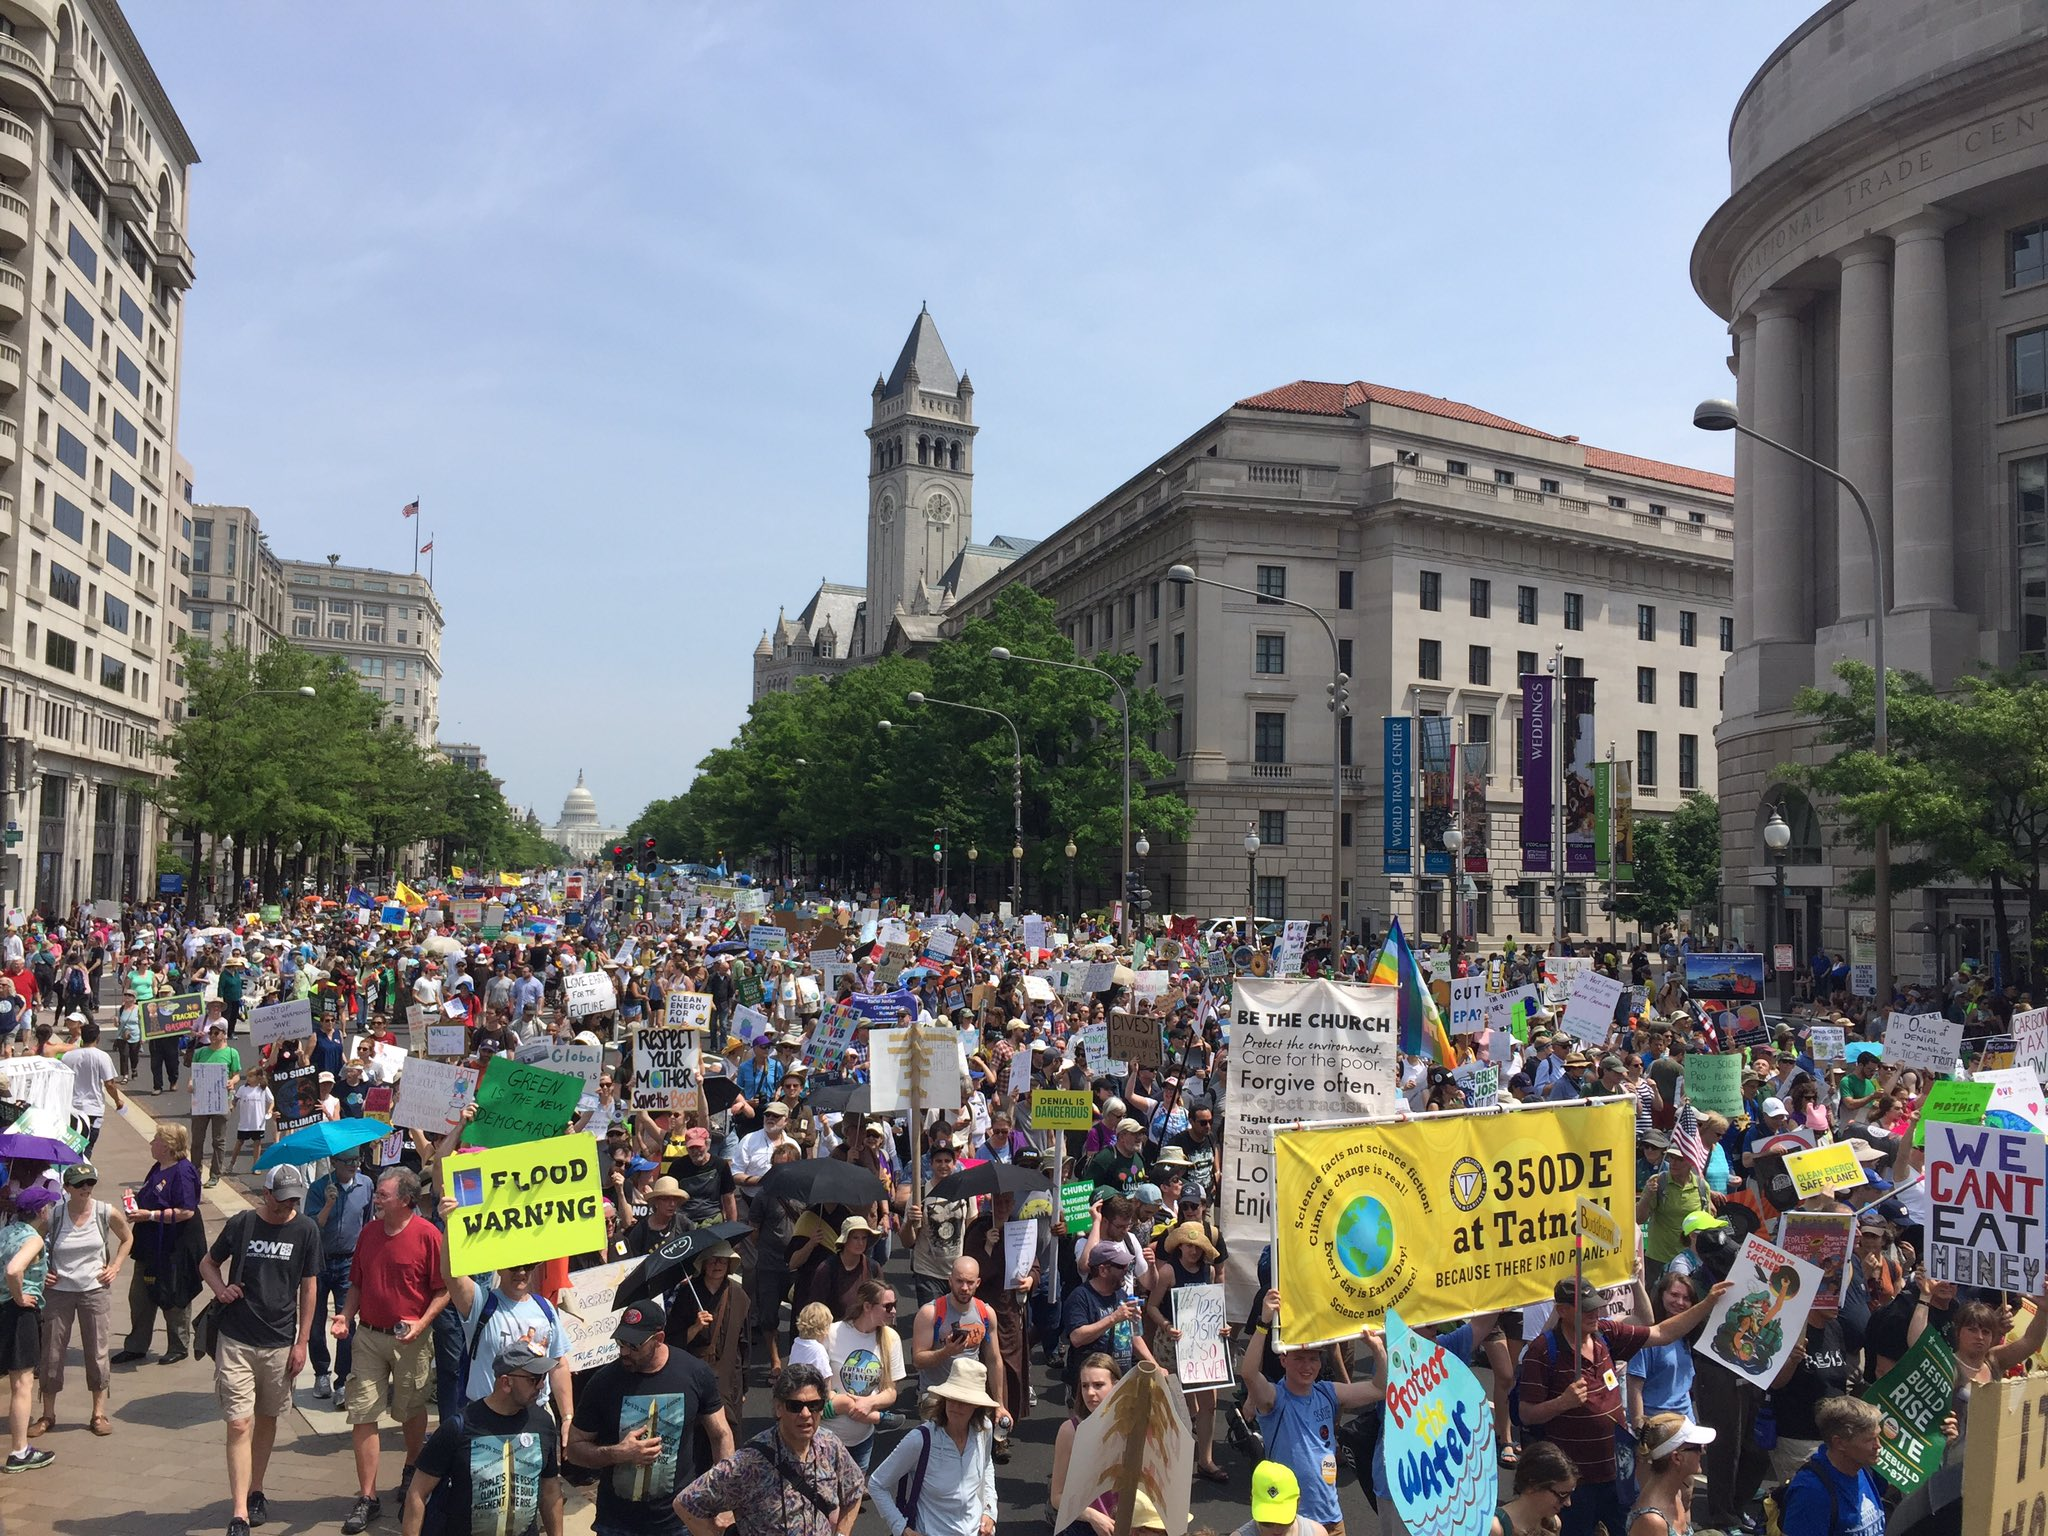 Indigenous leaders. Workers. Environmentalists. People of faith. All united to protect God's Creation. #climatemarch https://t.co/P87FomDpOx